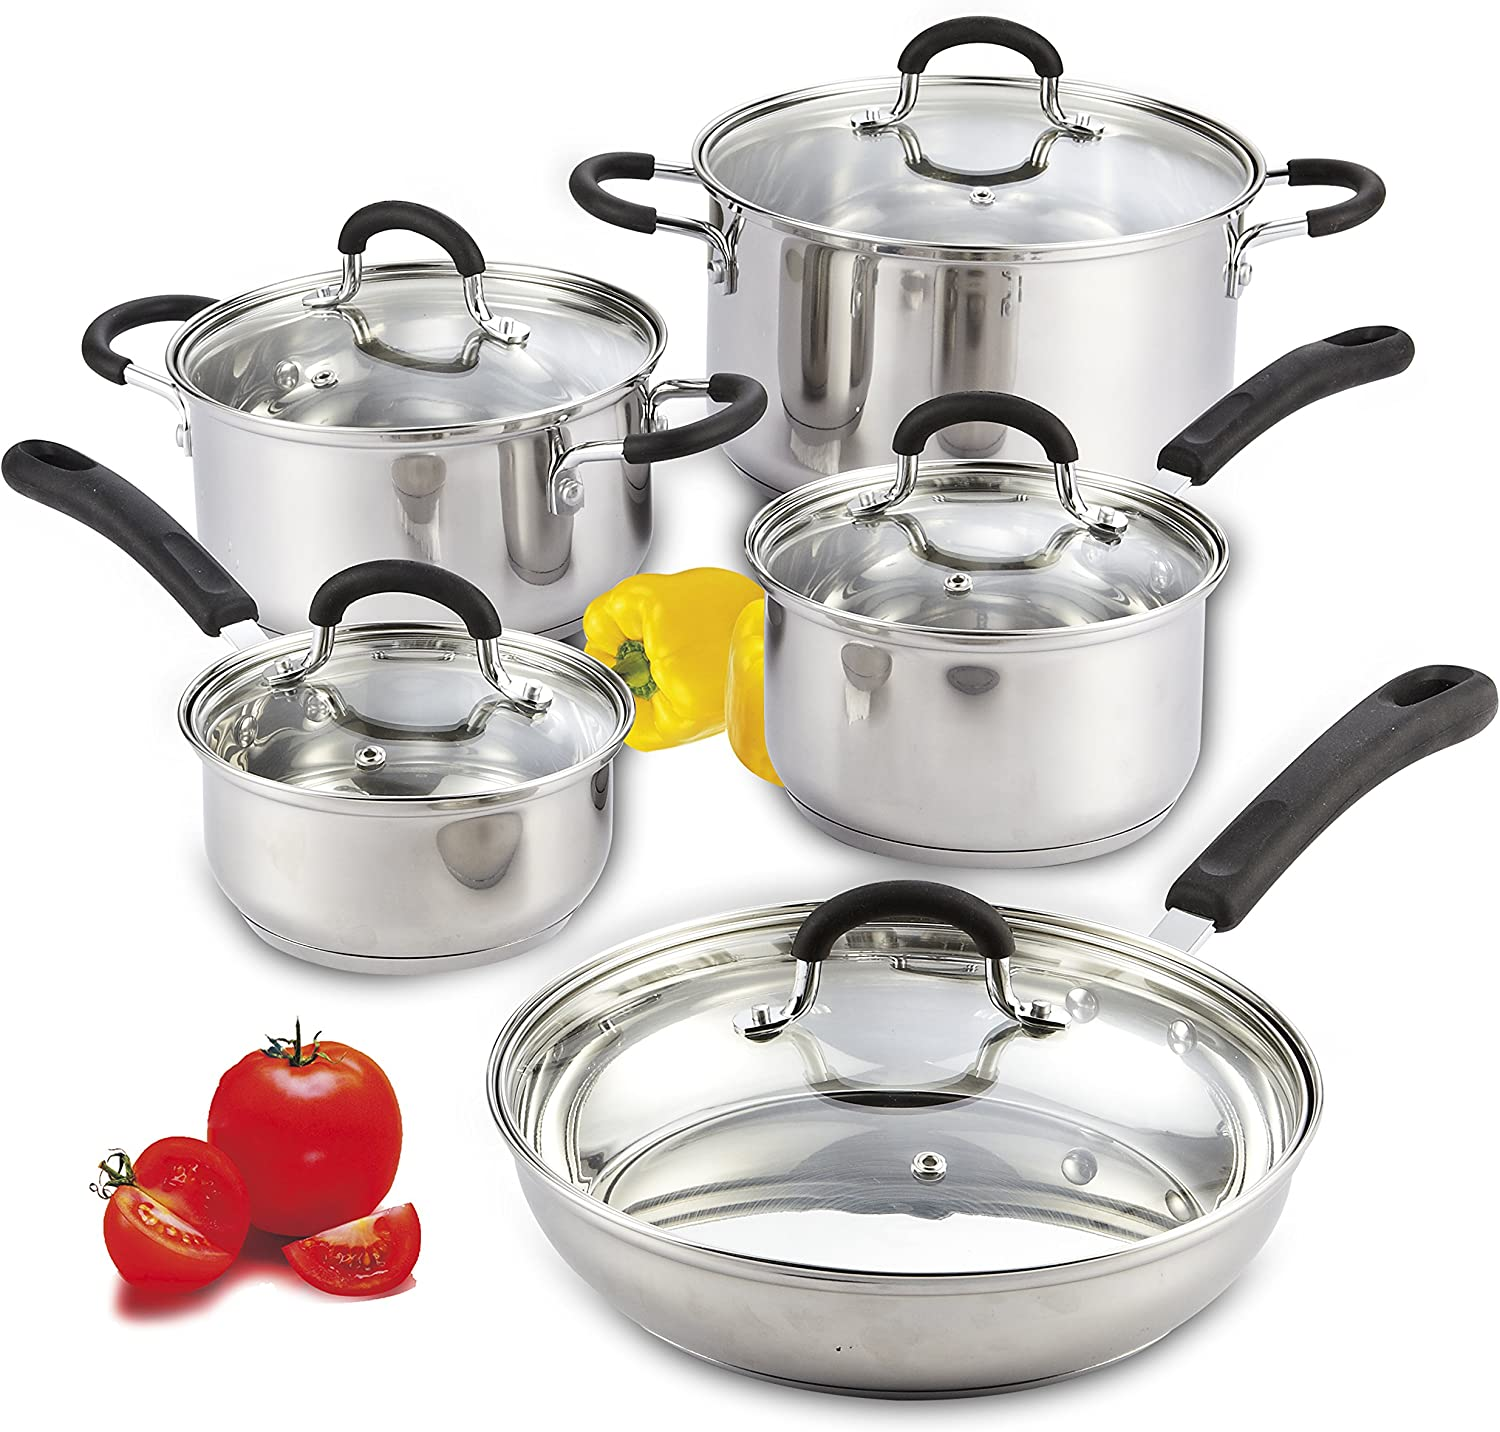 Cook N Home 10-Piece Stainless Steel Cookware Set: Kitchen & Dining